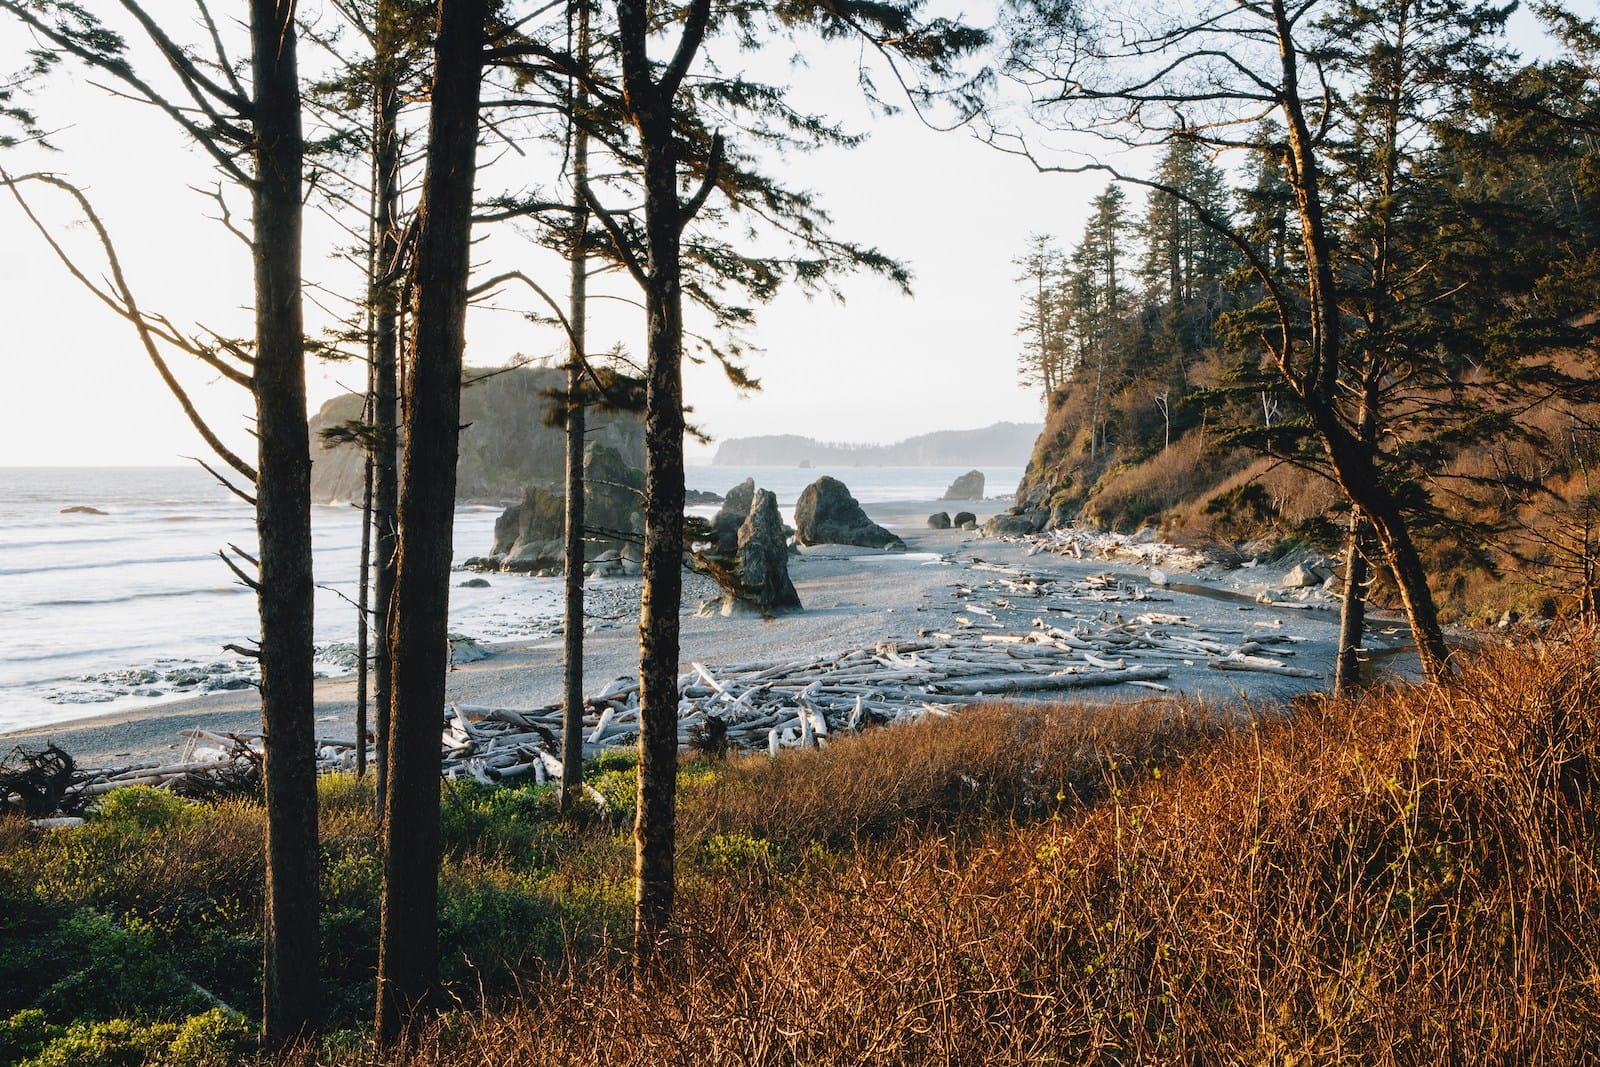 Olympic National Park. (Photo by Mint Images/Getty Images)